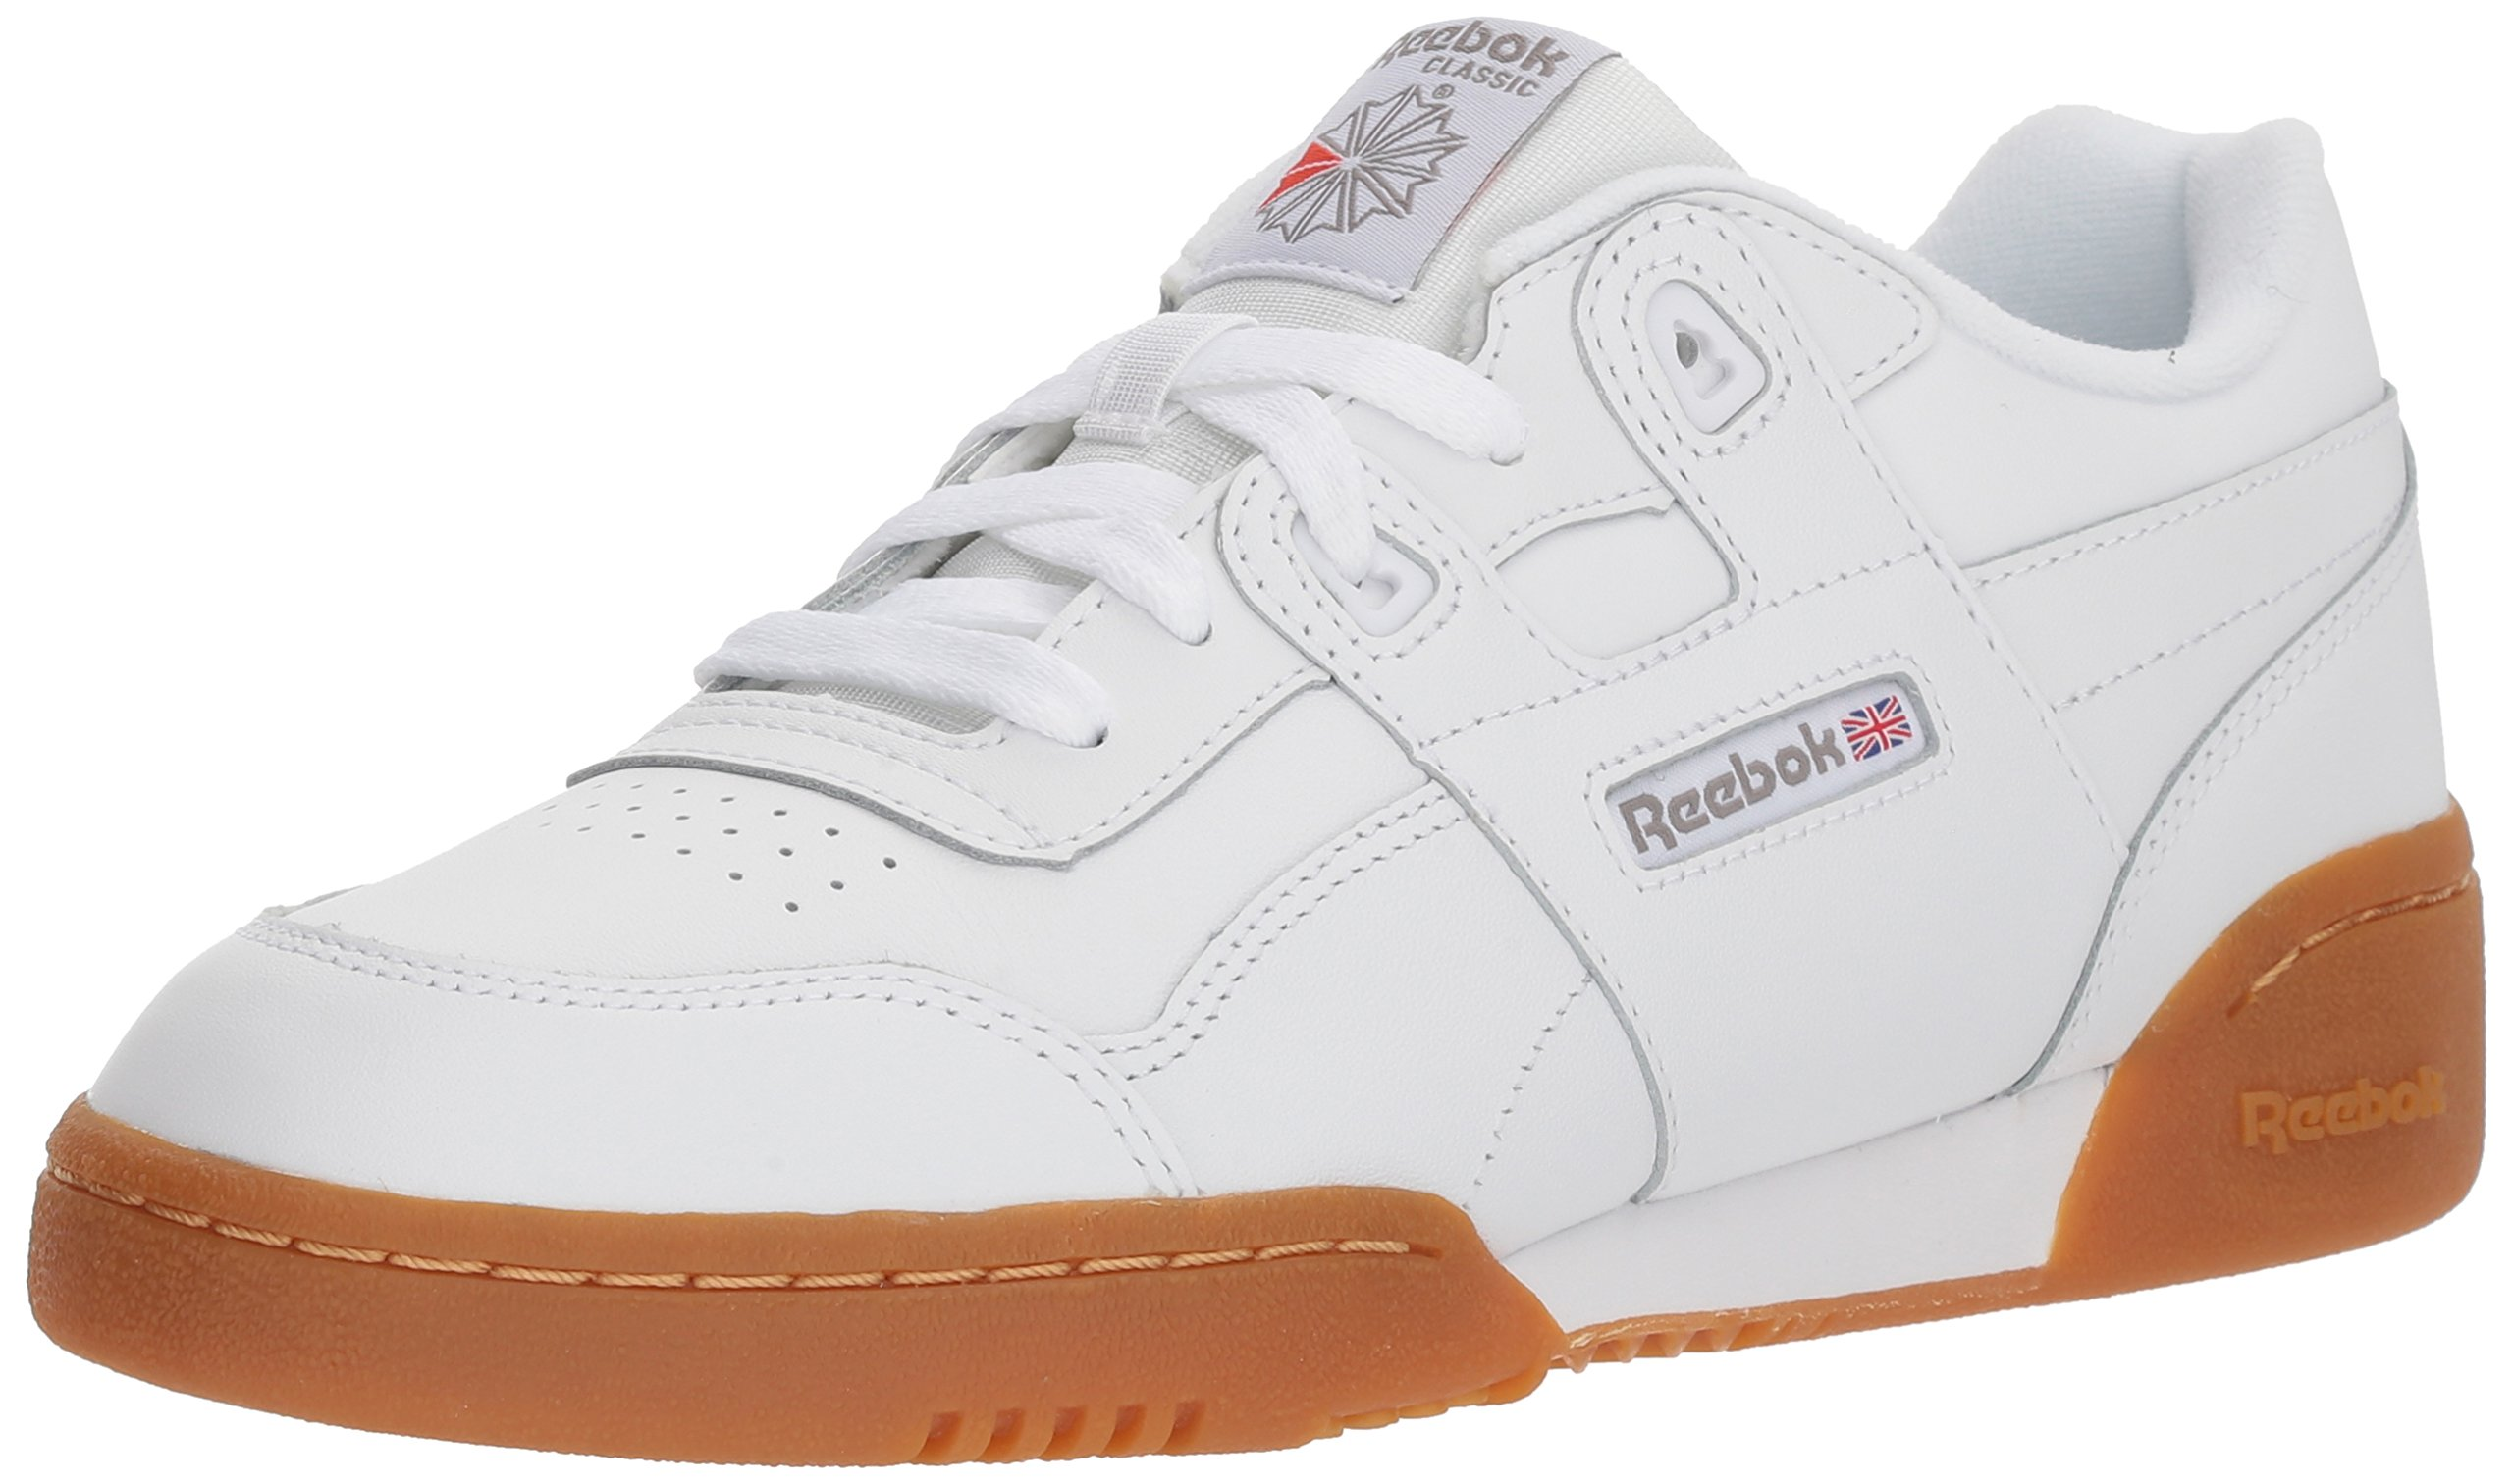 Reebok Unisex-Kids Workout Plus Sneaker, White/Carbon/Classic Red, 5.5 M US Big Kid